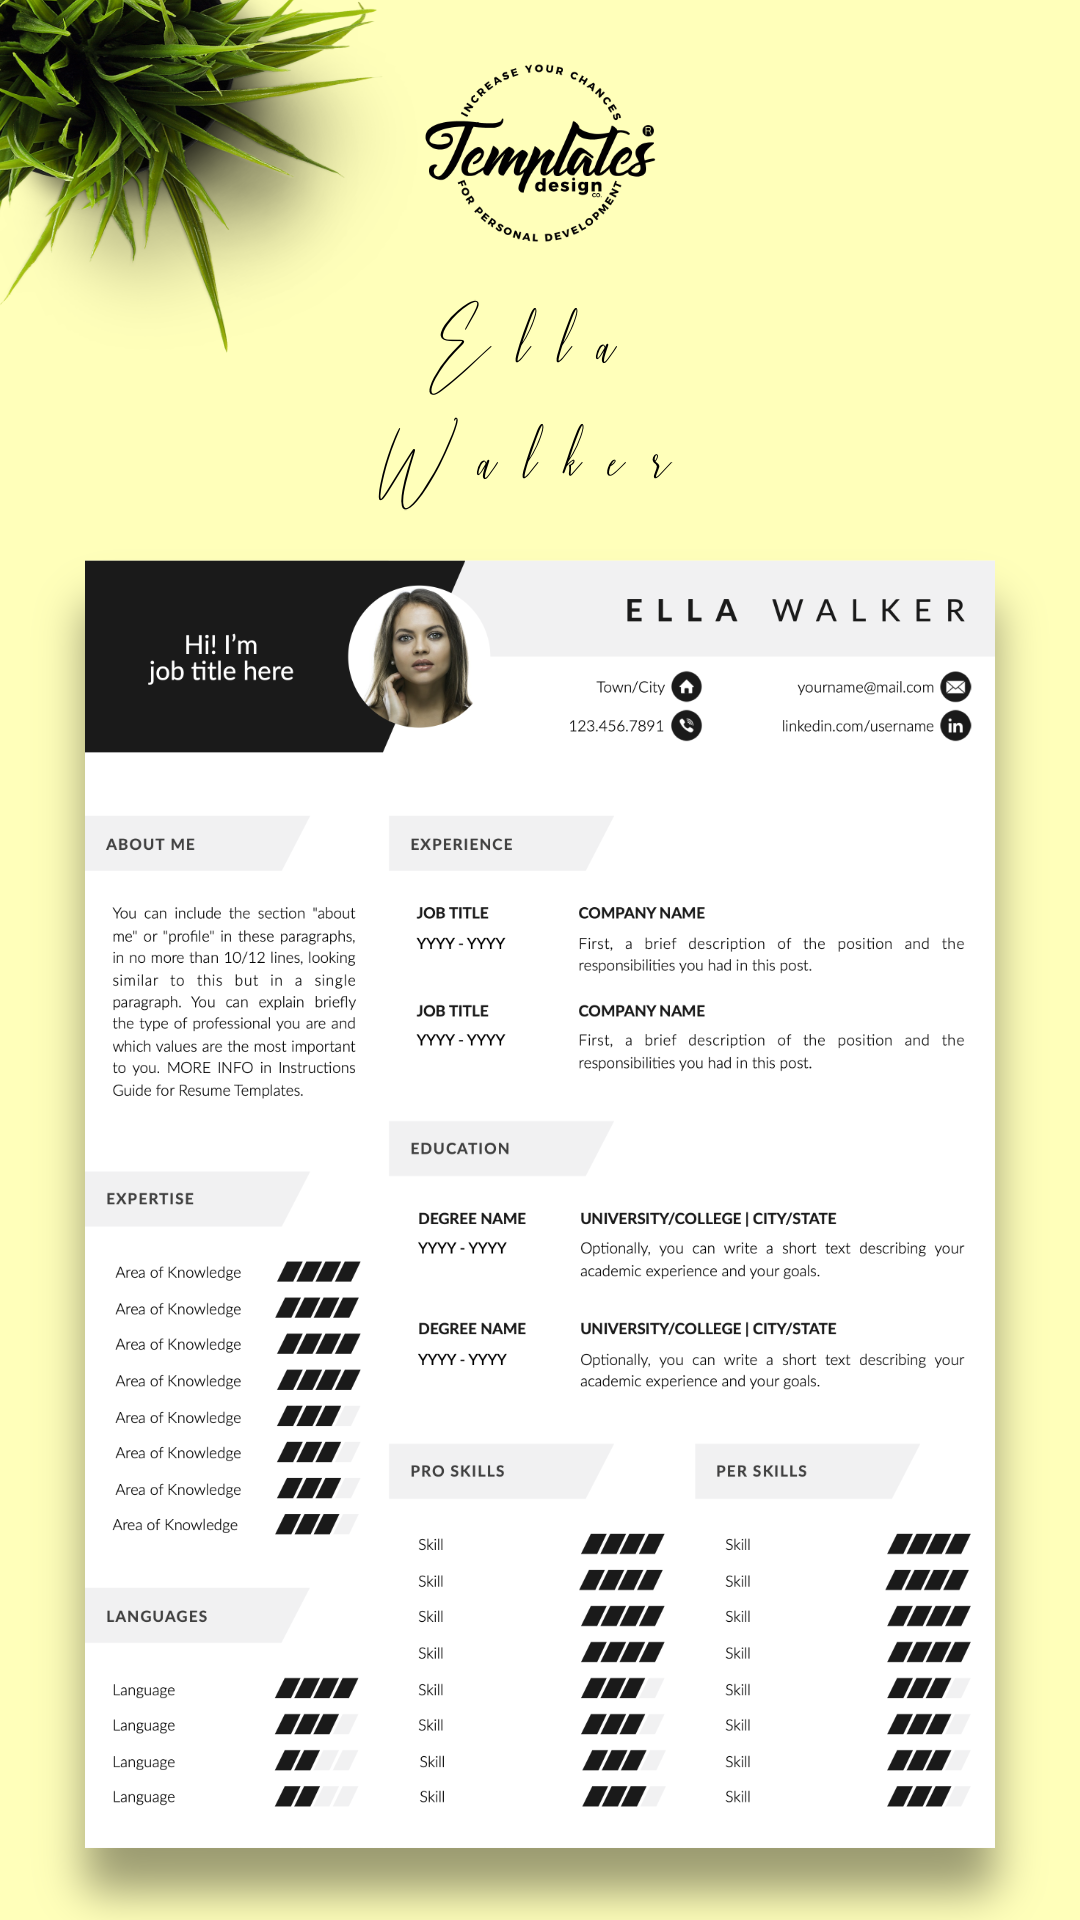 Creative Cv With Photo Cover Modern Resume Design For Word Pages Best Resume Template Etsy One Two And Three Page Resume Design Creative Resume Templates Modern Resume Design Resume Template